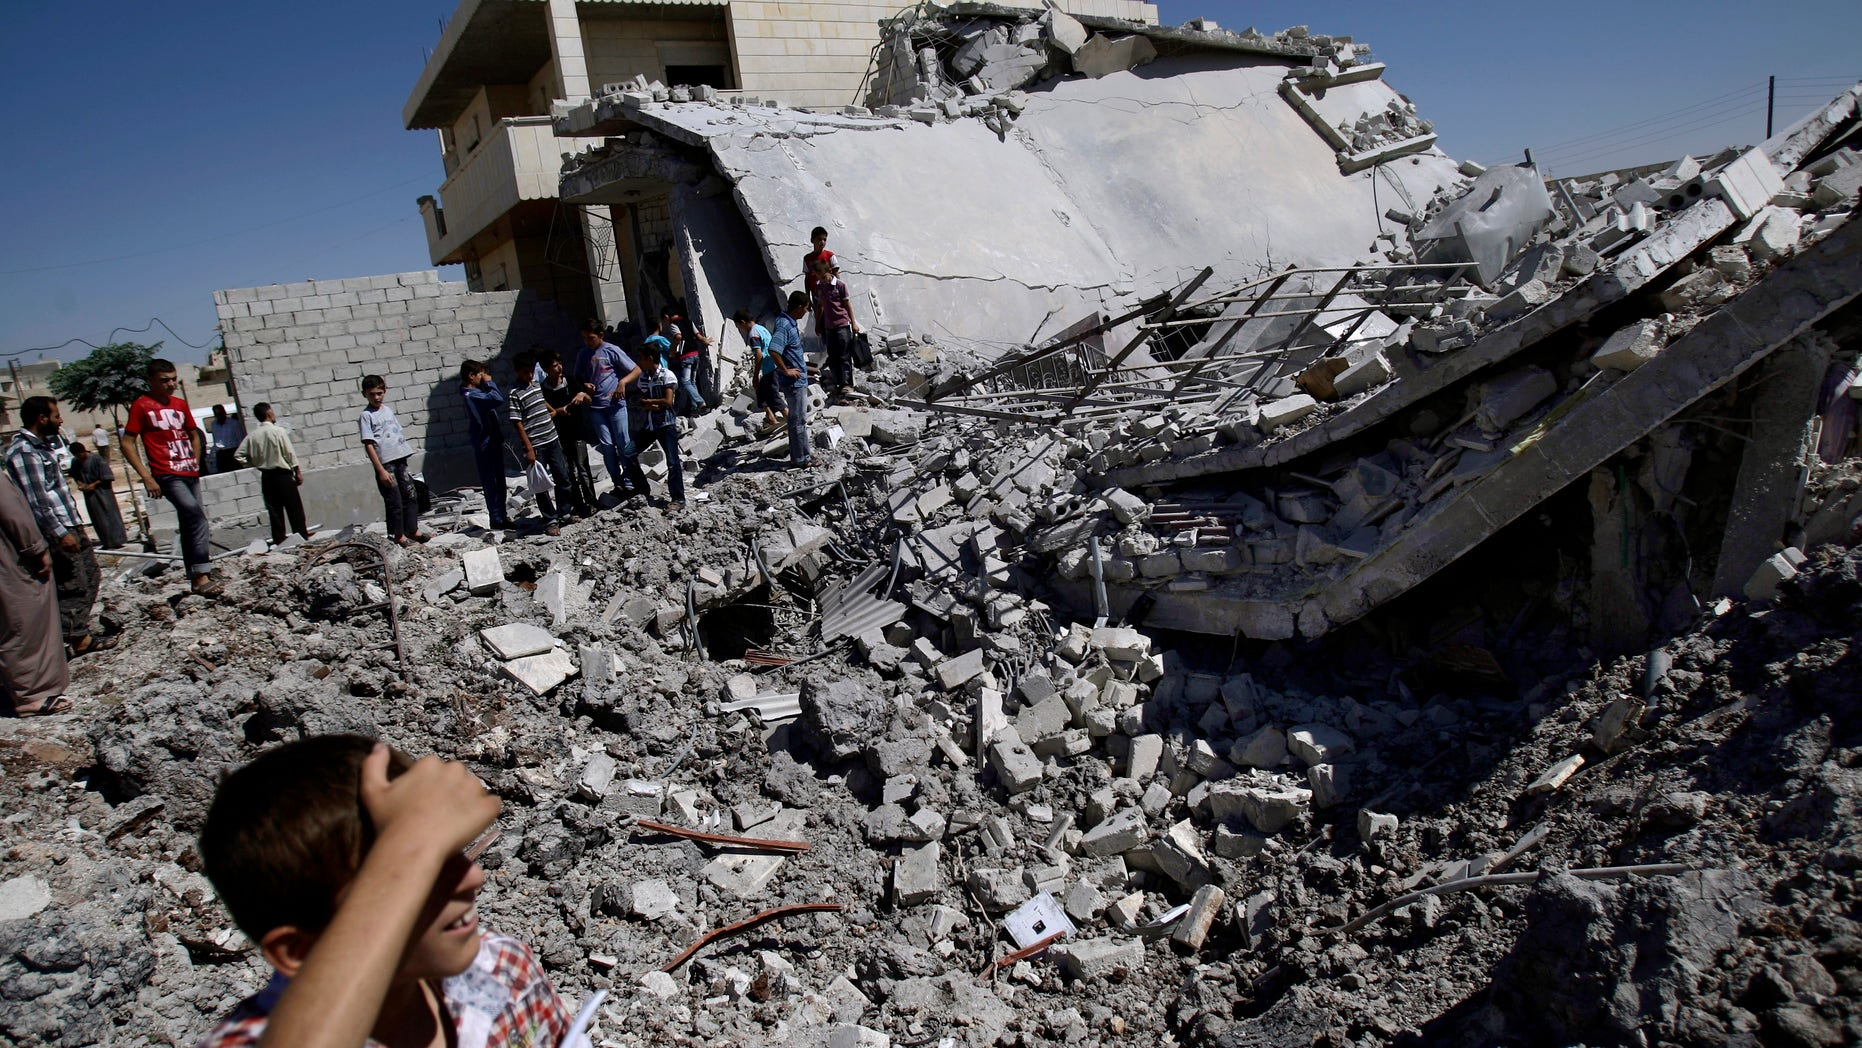 Sept. 3, 2012 - Syrians gather by the rubble of a house, destroyed from Syrian forces shelling in the Syrian town of Azaz, on the outskirts of Aleppo.